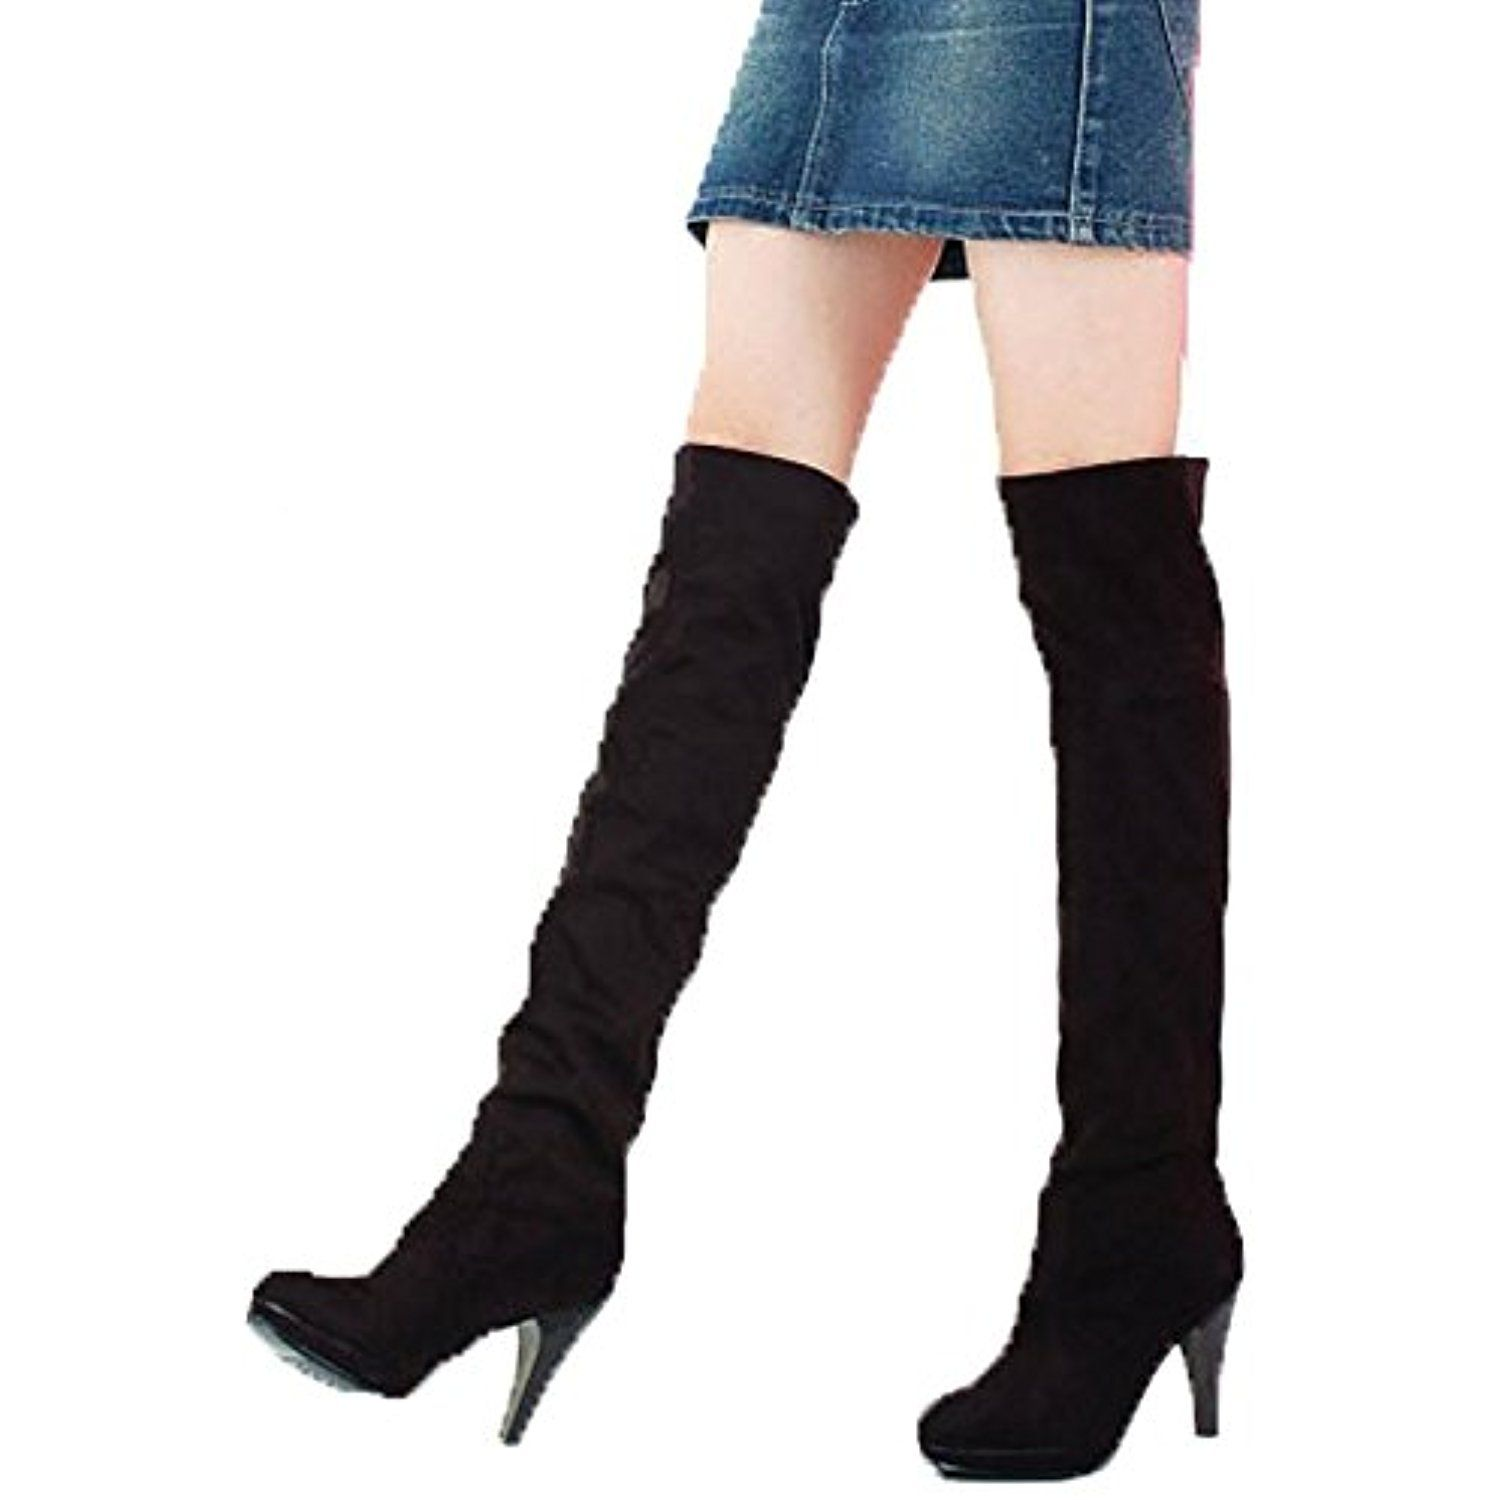 Women's Over Knee Thigh High Stretchy Wedge High Heel Pull On Shoes Knight Boots